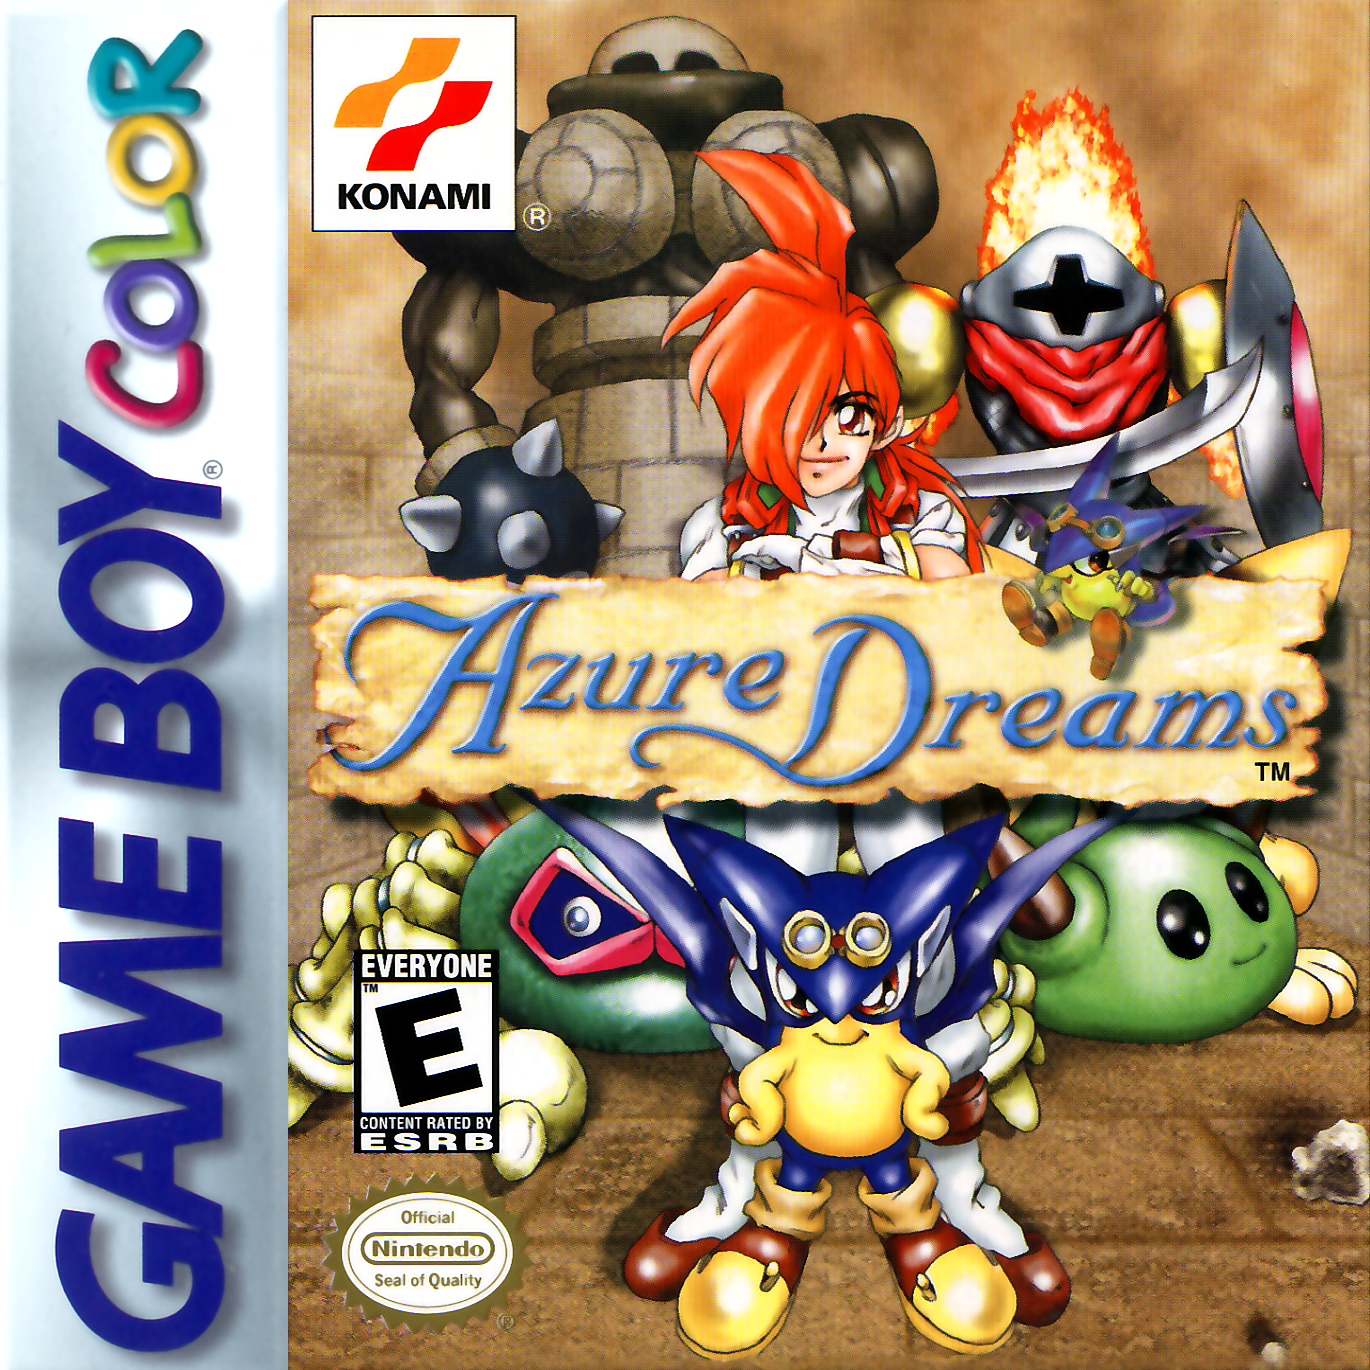 Game boy color online games - Azure Dreams Nintendo Game Boy Color Cover Artwork